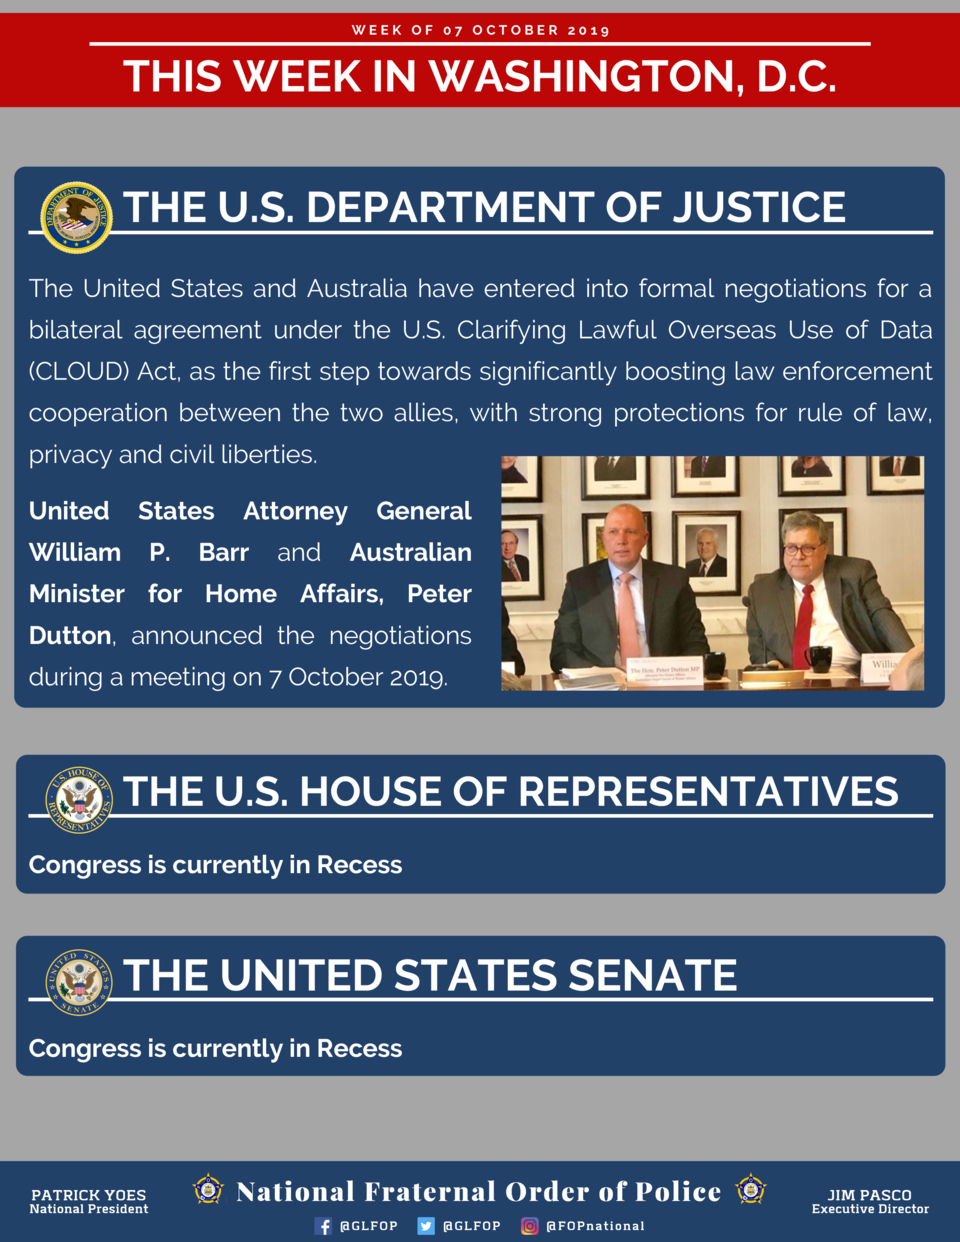 WEEK OF 07 OCTOBER 2019  THIS WEEK IN WASHINGTON, D.C. THE U.S. DEPARTMENT OF JUSTICE The United States and Australia have...